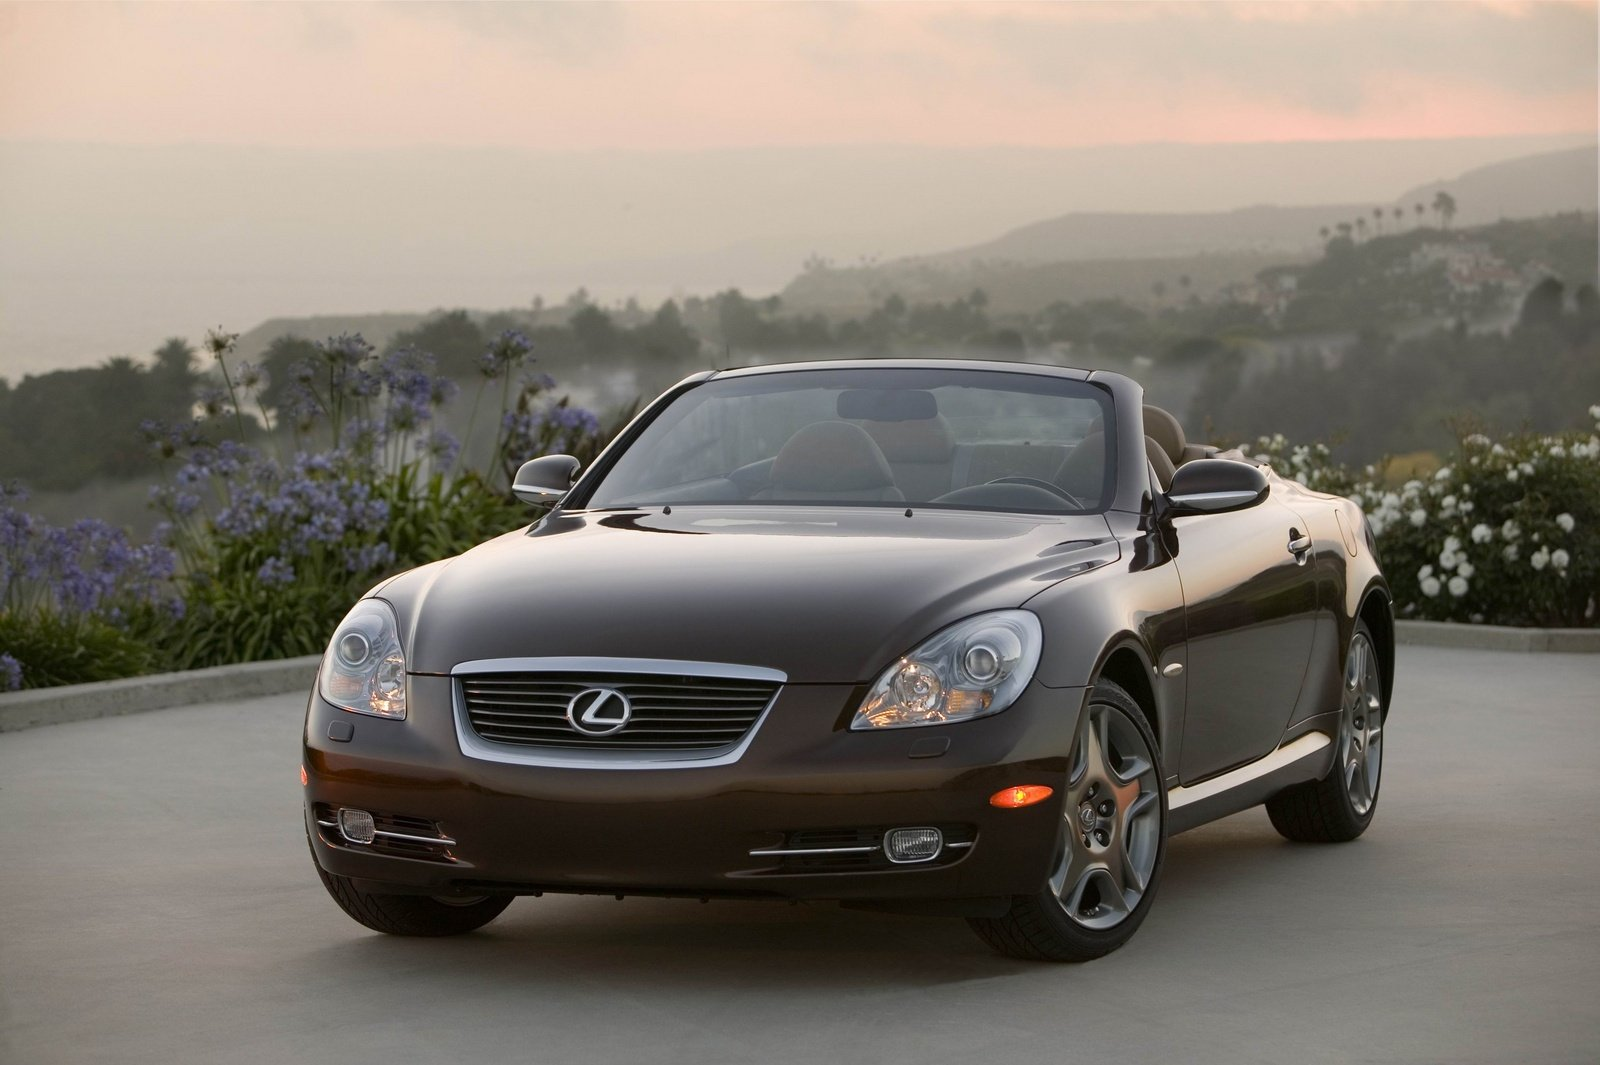 2007 lexus sc 430 picture 99310 car review top speed. Black Bedroom Furniture Sets. Home Design Ideas